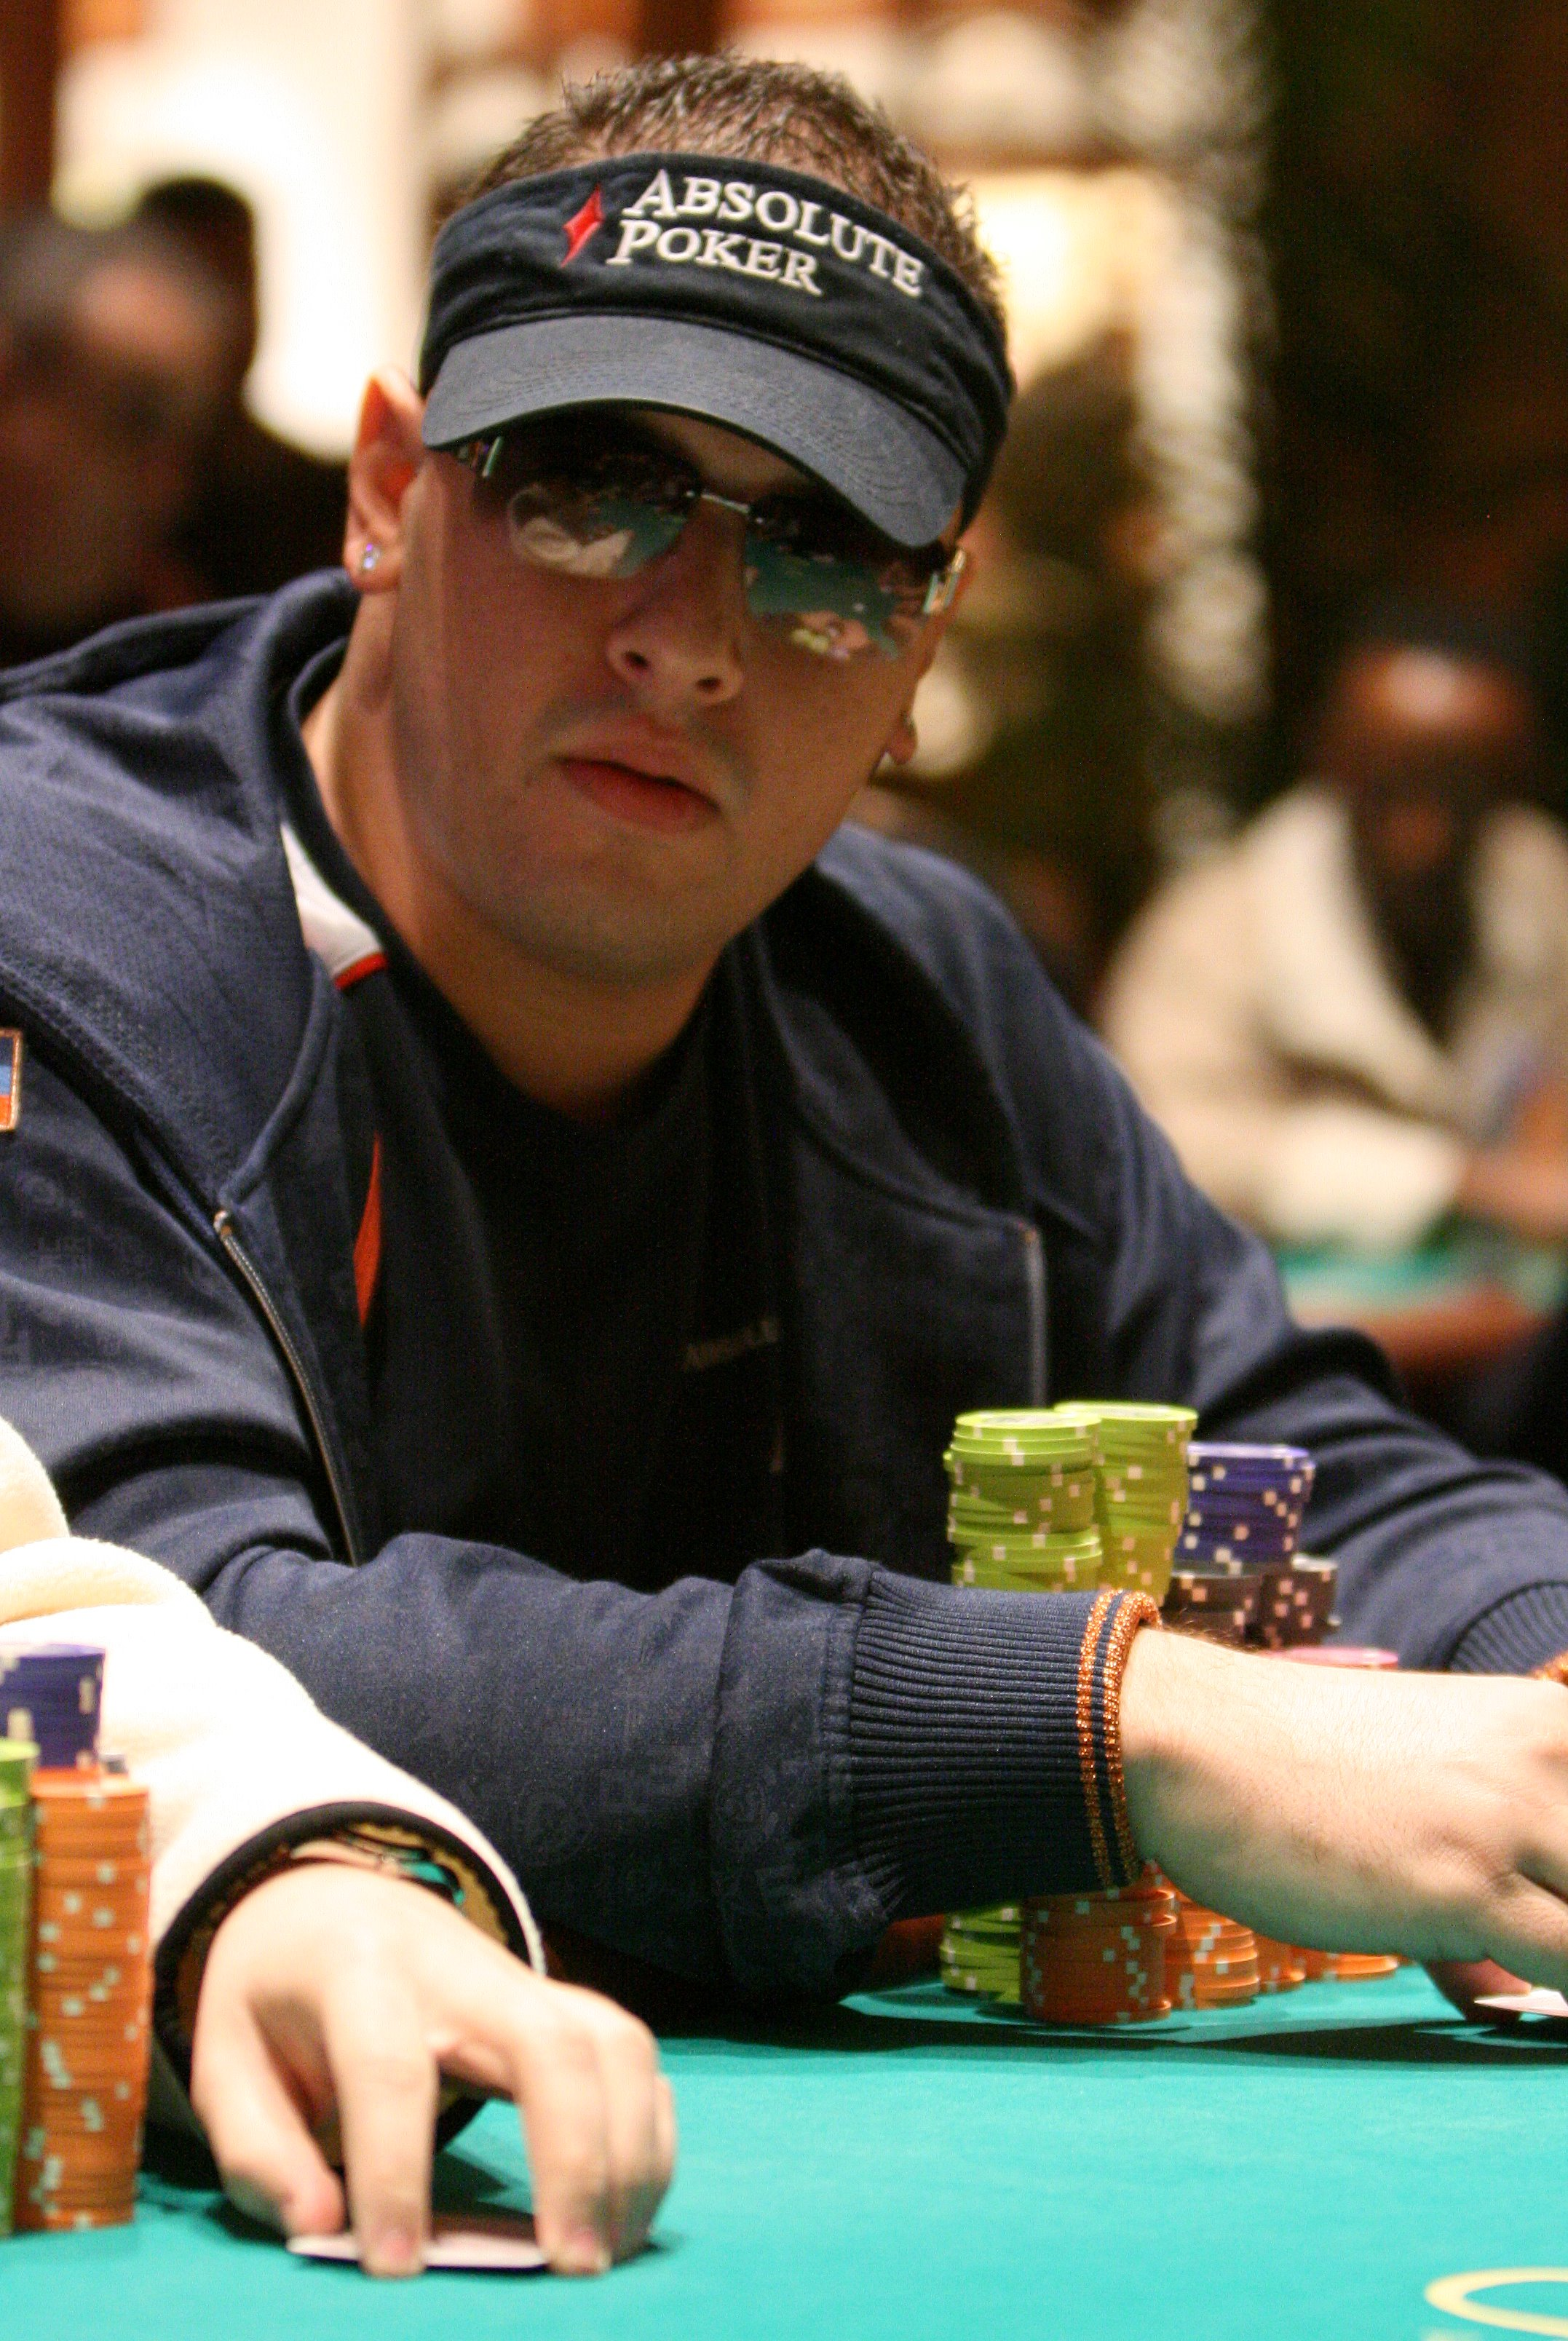 David peterson poker